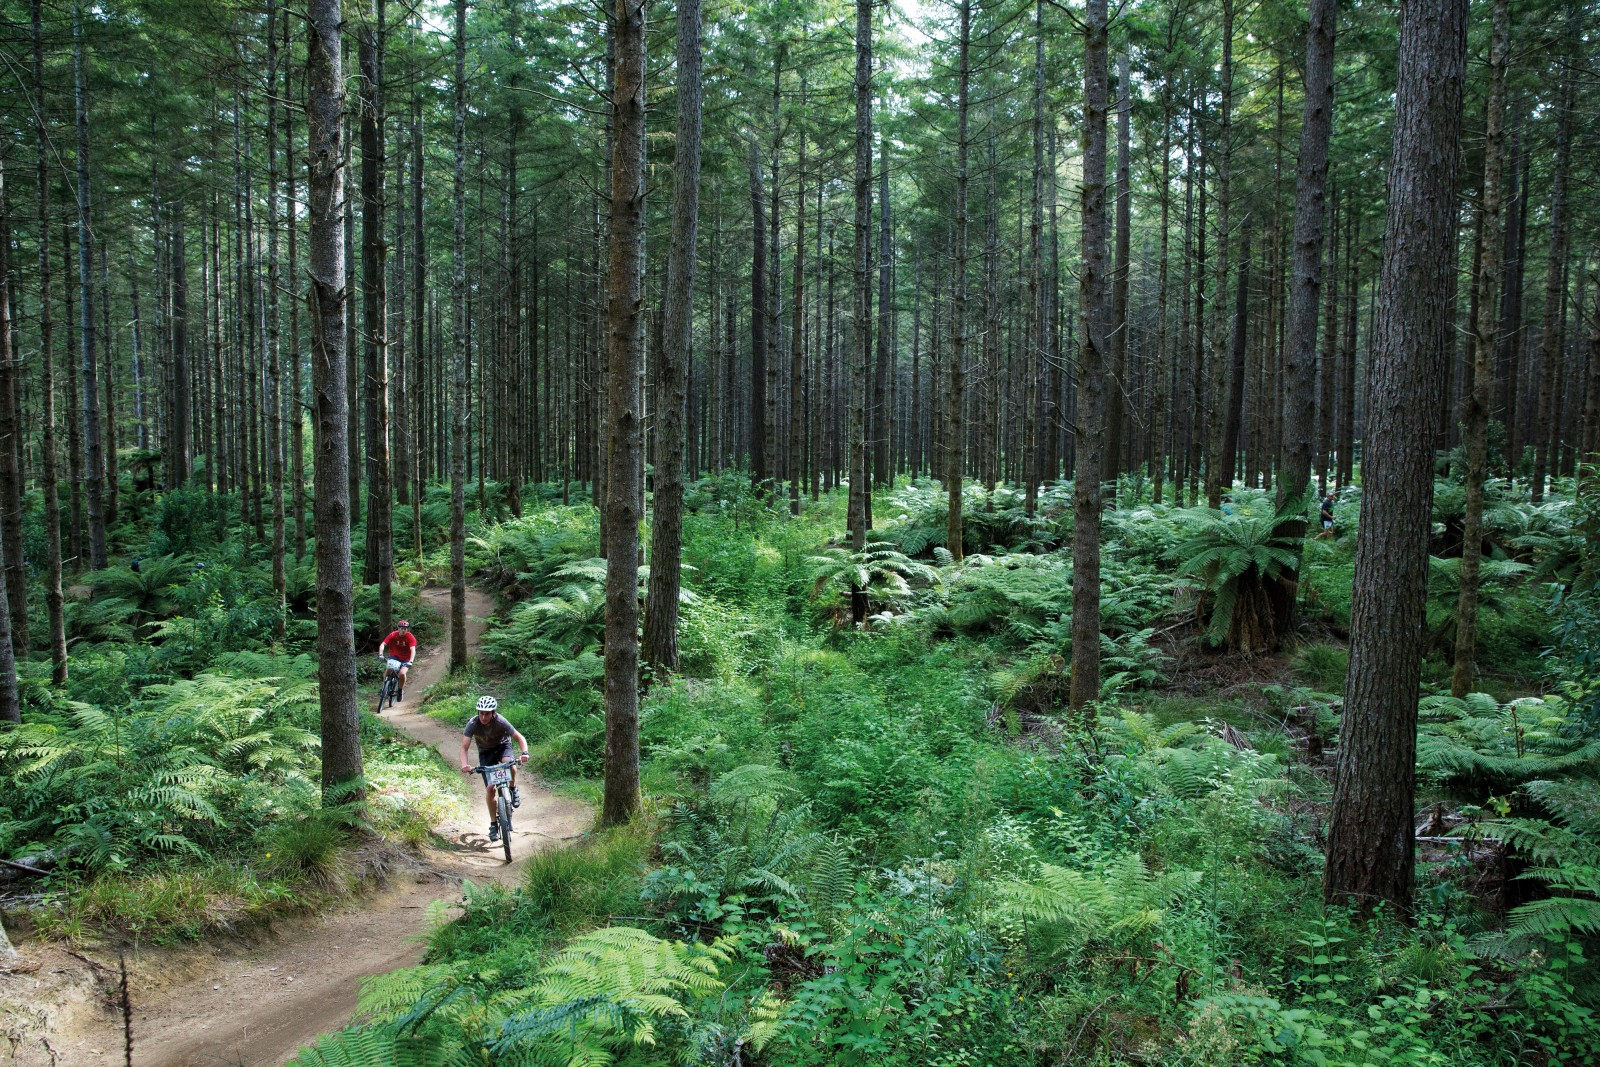 A rider from the team JagerBums (foreground) cruises through the Creek Trail, built by Fred Christensen in 1995 and one of the first trails in the Whakarewarewa Forest. While some of the trails wind through stands of eucalyptus and mighty redwoods, Creek Trail meanders through pines. Malcolm 'Red' McHale, a 66-year-old warden with the Department of Corrections has been taking work crews into the forest since 1994, maintaining old trails and building new ones.